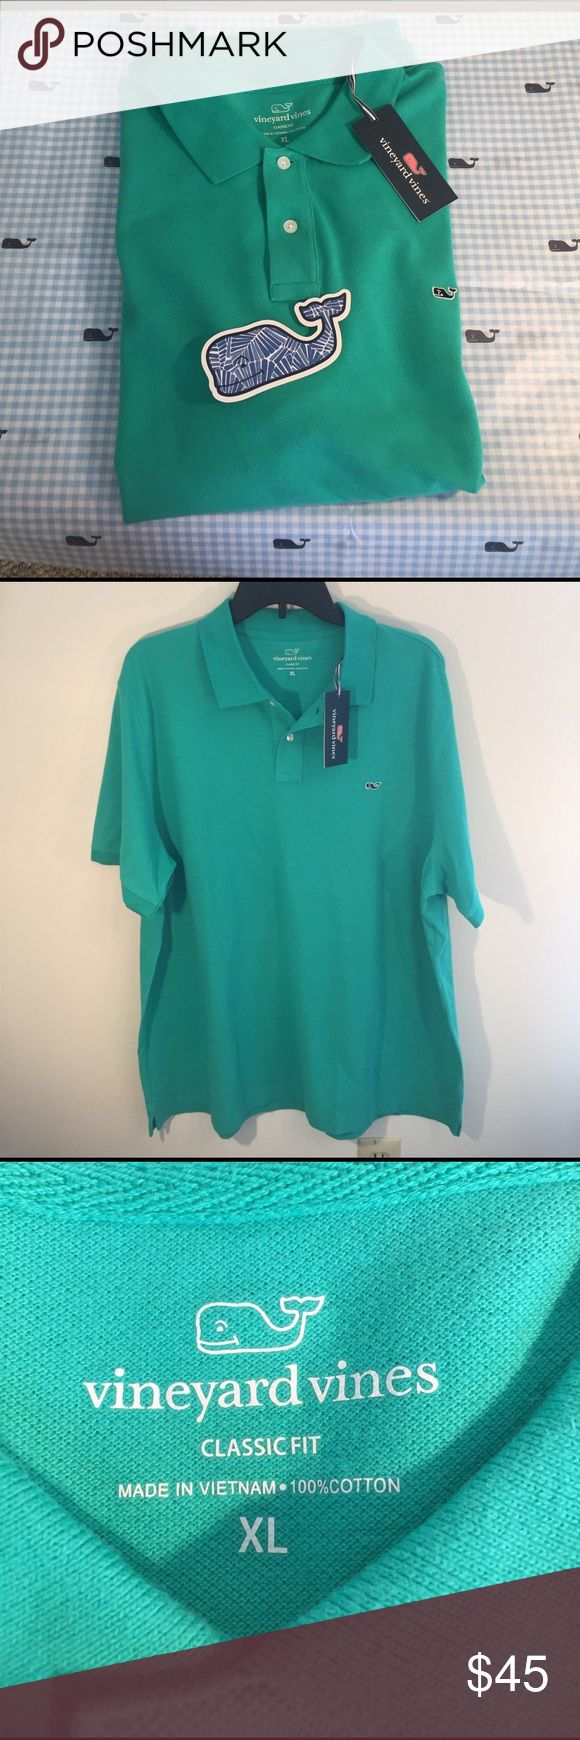 NEW Vineyard Vines XL Cove Green Classic Fit Polo NEW Vineyard Vines XL Cove Green Classic Fit Polo 100% Cotton with Blue Whale Sticker Vineyard Vines Shirts Polos